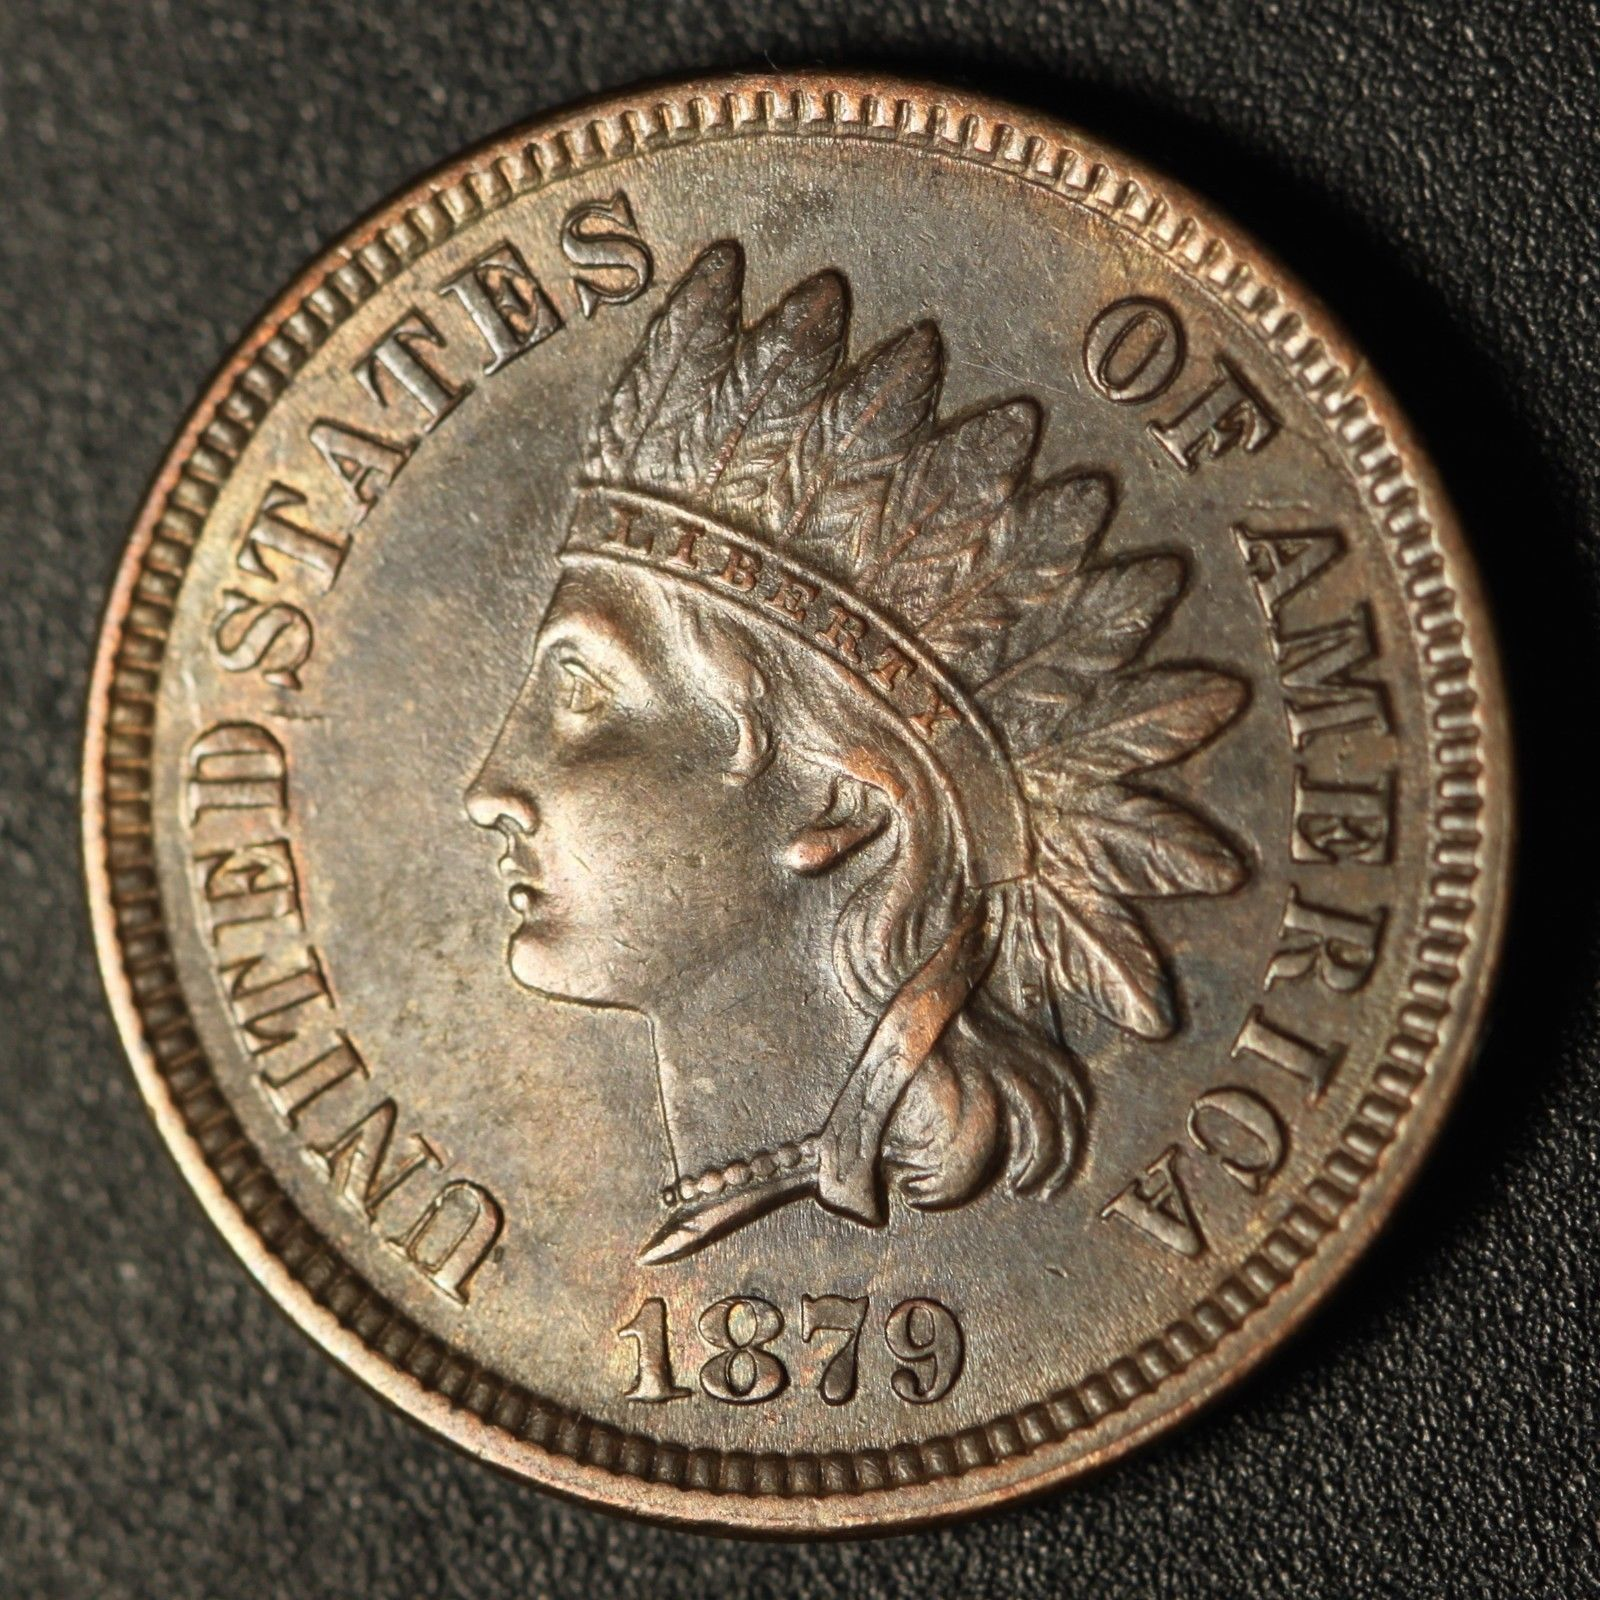 1879 RPD-005 - Indian Head Penny - Photo by Ed Nathanson